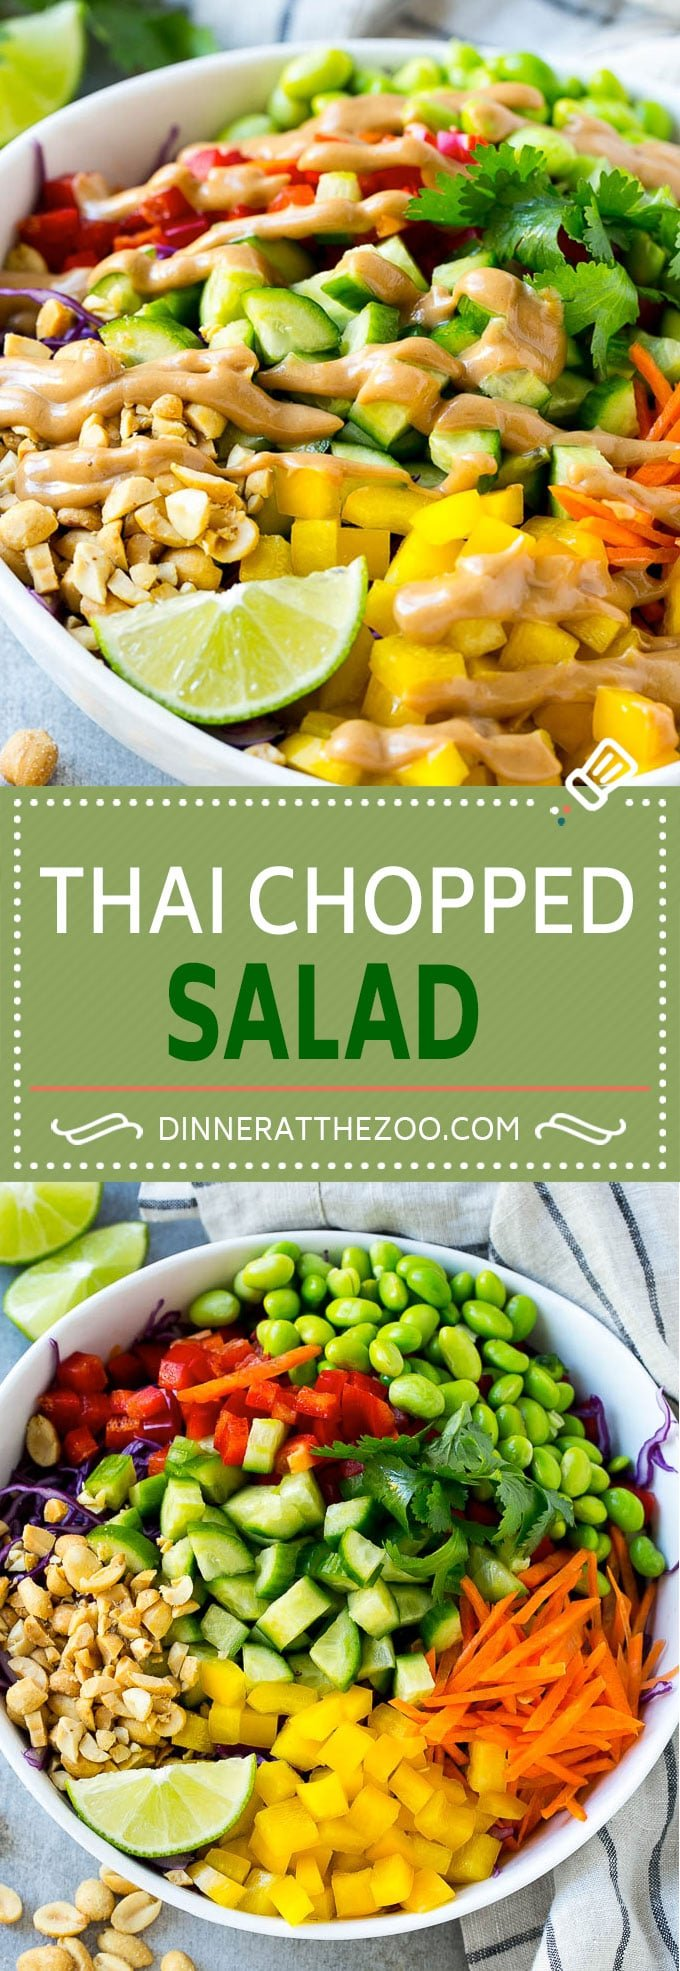 Thai Chopped Salad Recipe | Thai Salad | Chopped Salad #salad #healthy #veggies #dinneratthezoo